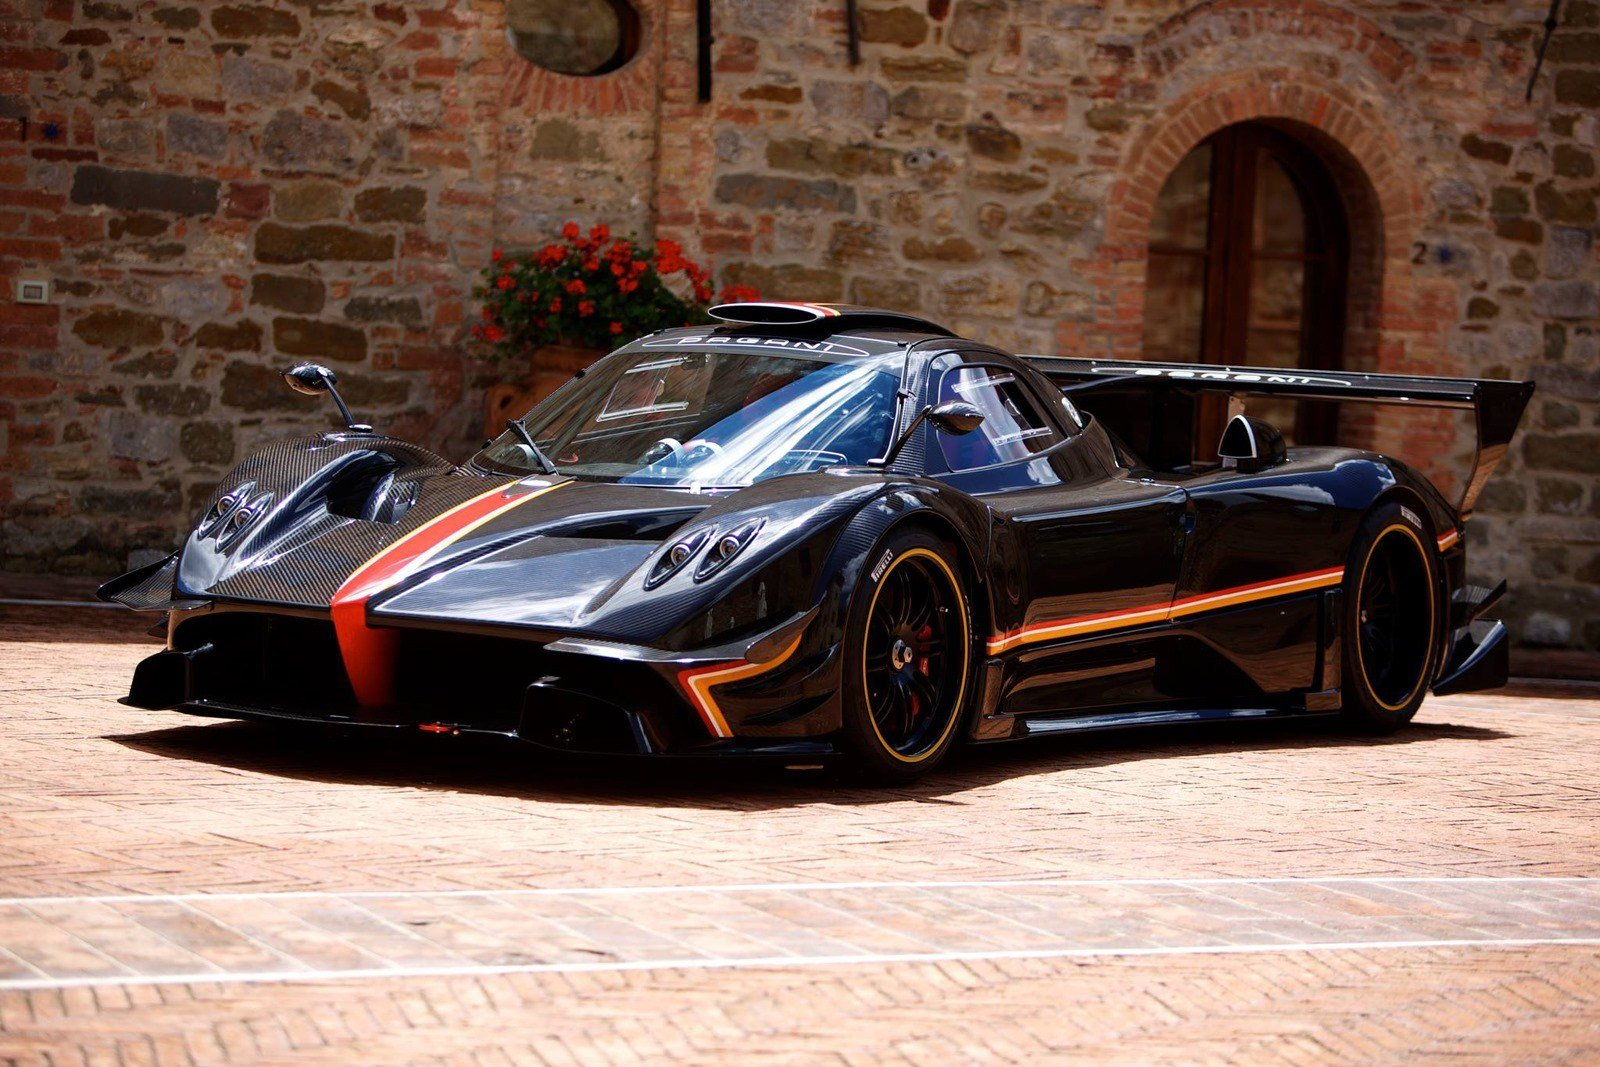 New Pagani Zonda Revolution The Last Zonda Details And Pictures On This Month